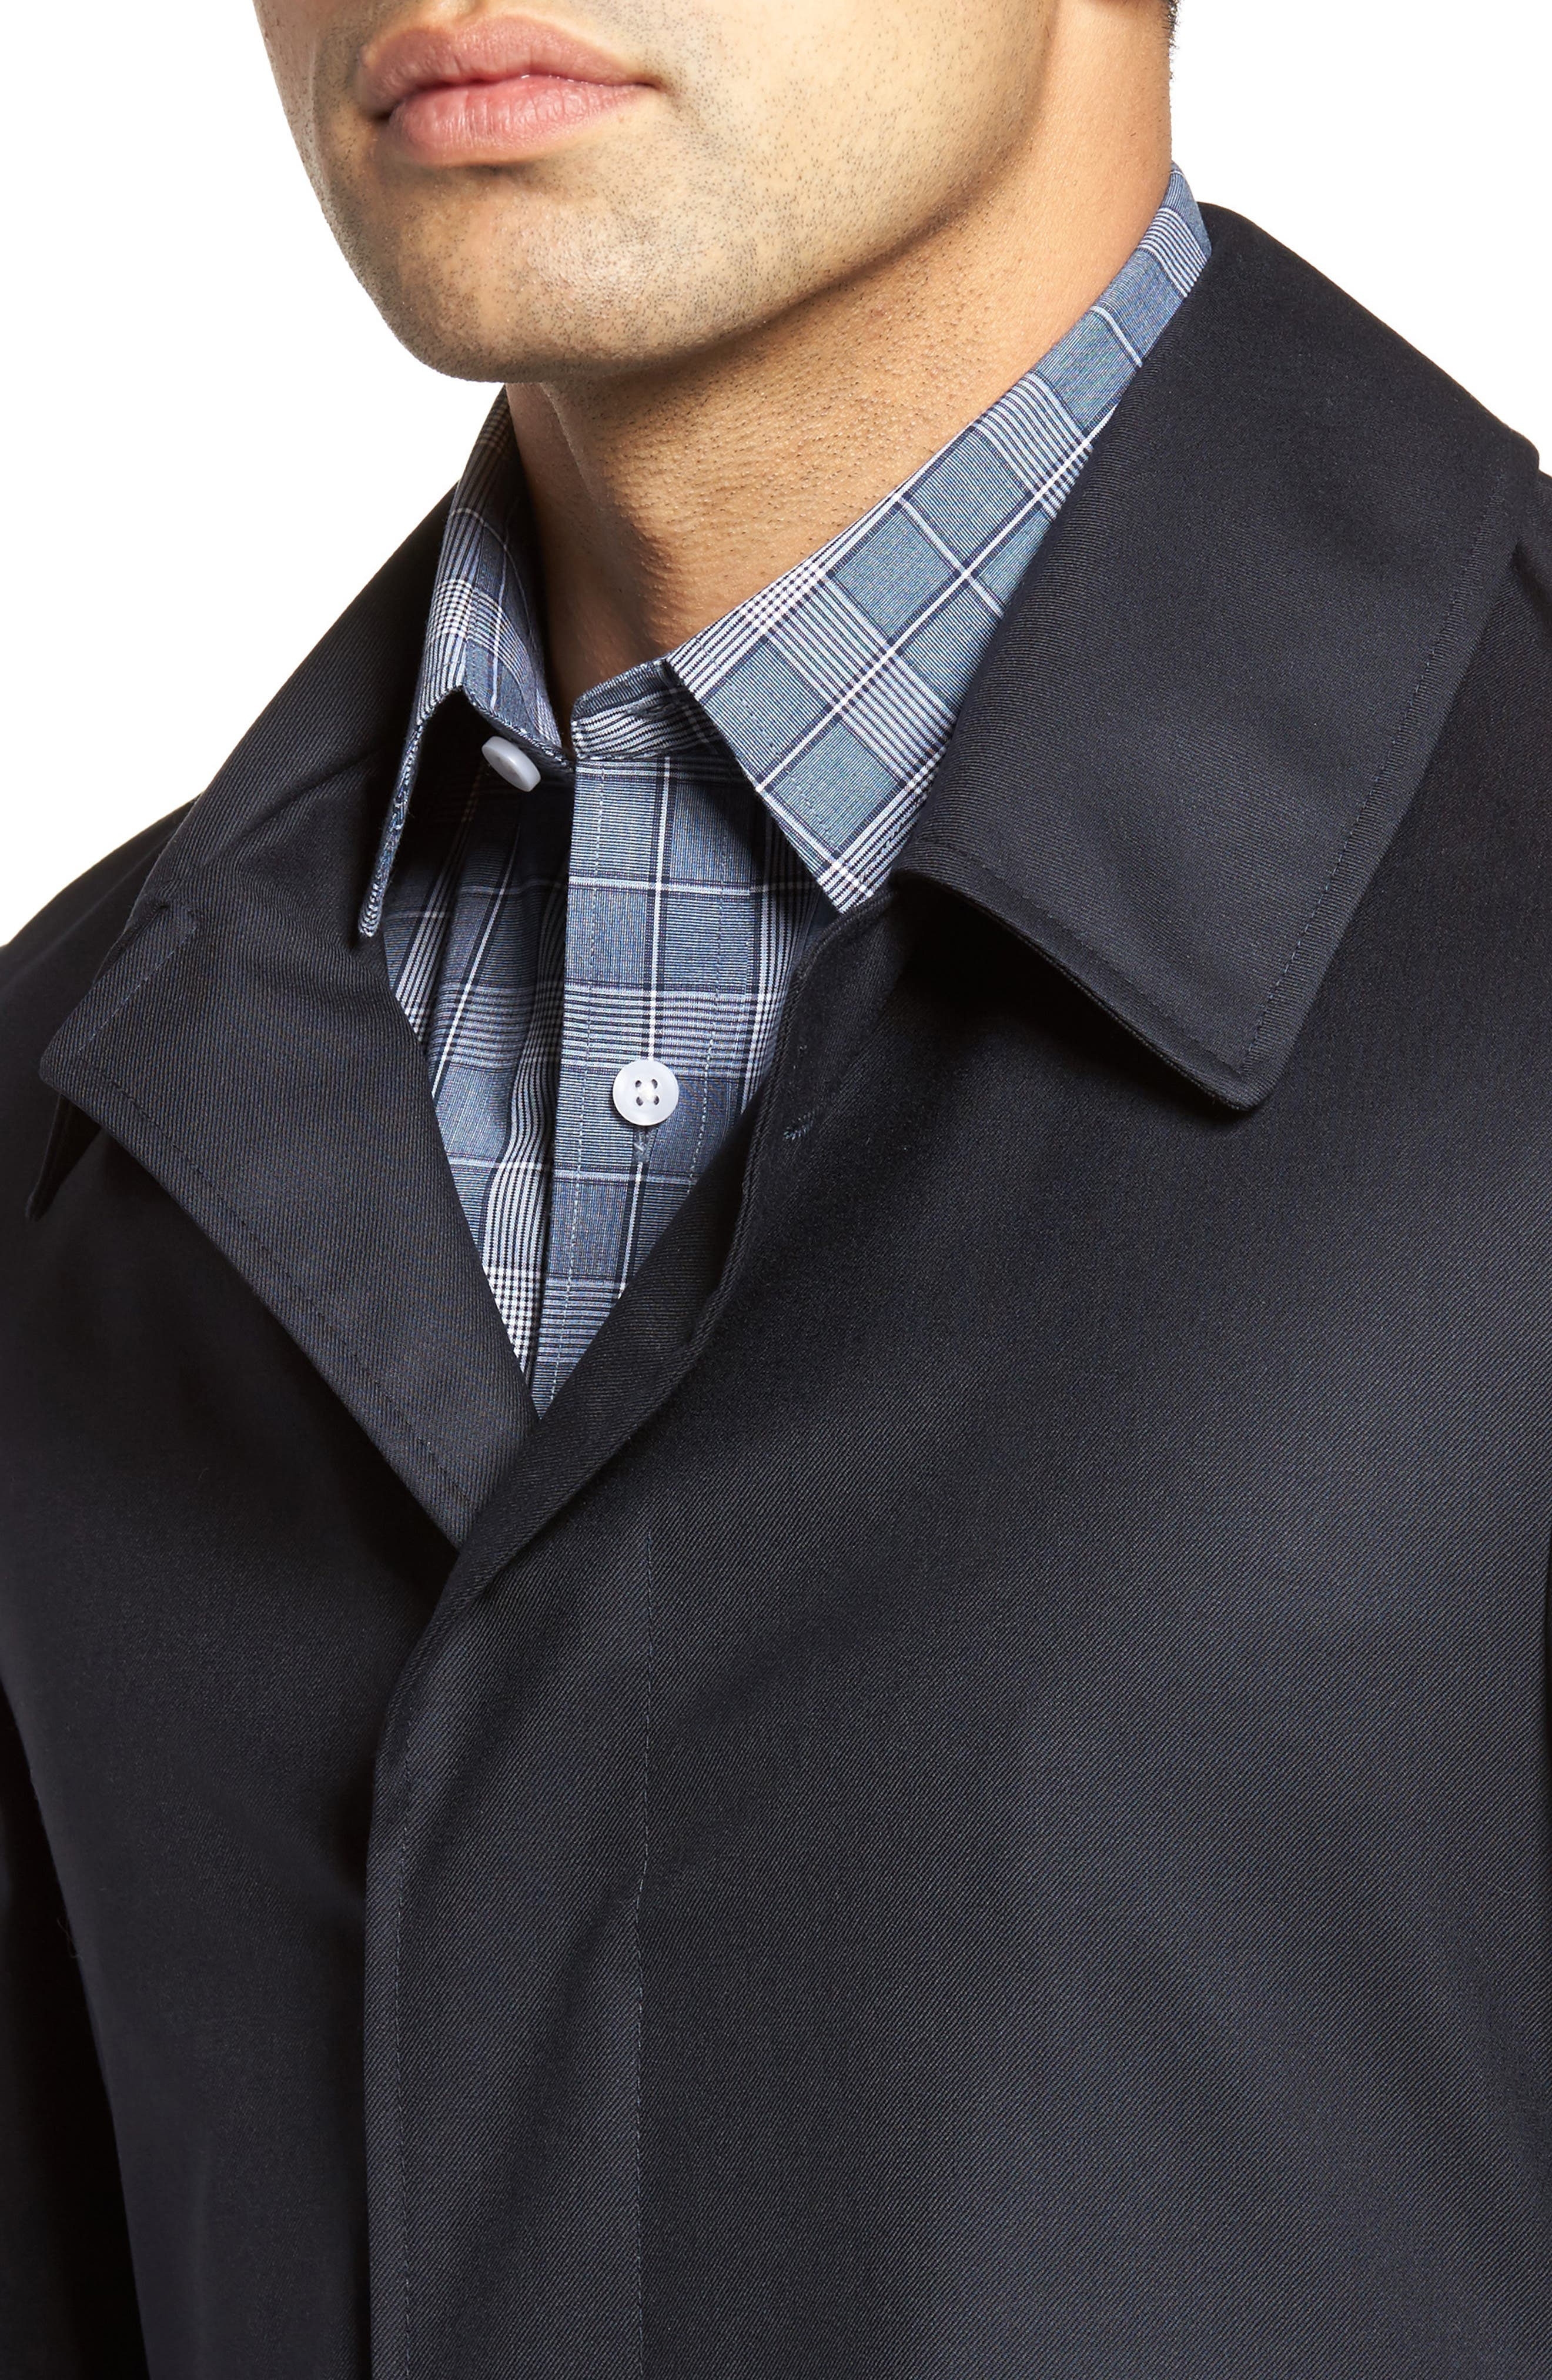 Classic Fit Wool & Cashmere Traveler Topcoat,                             Alternate thumbnail 4, color,                             NAVY SOLID